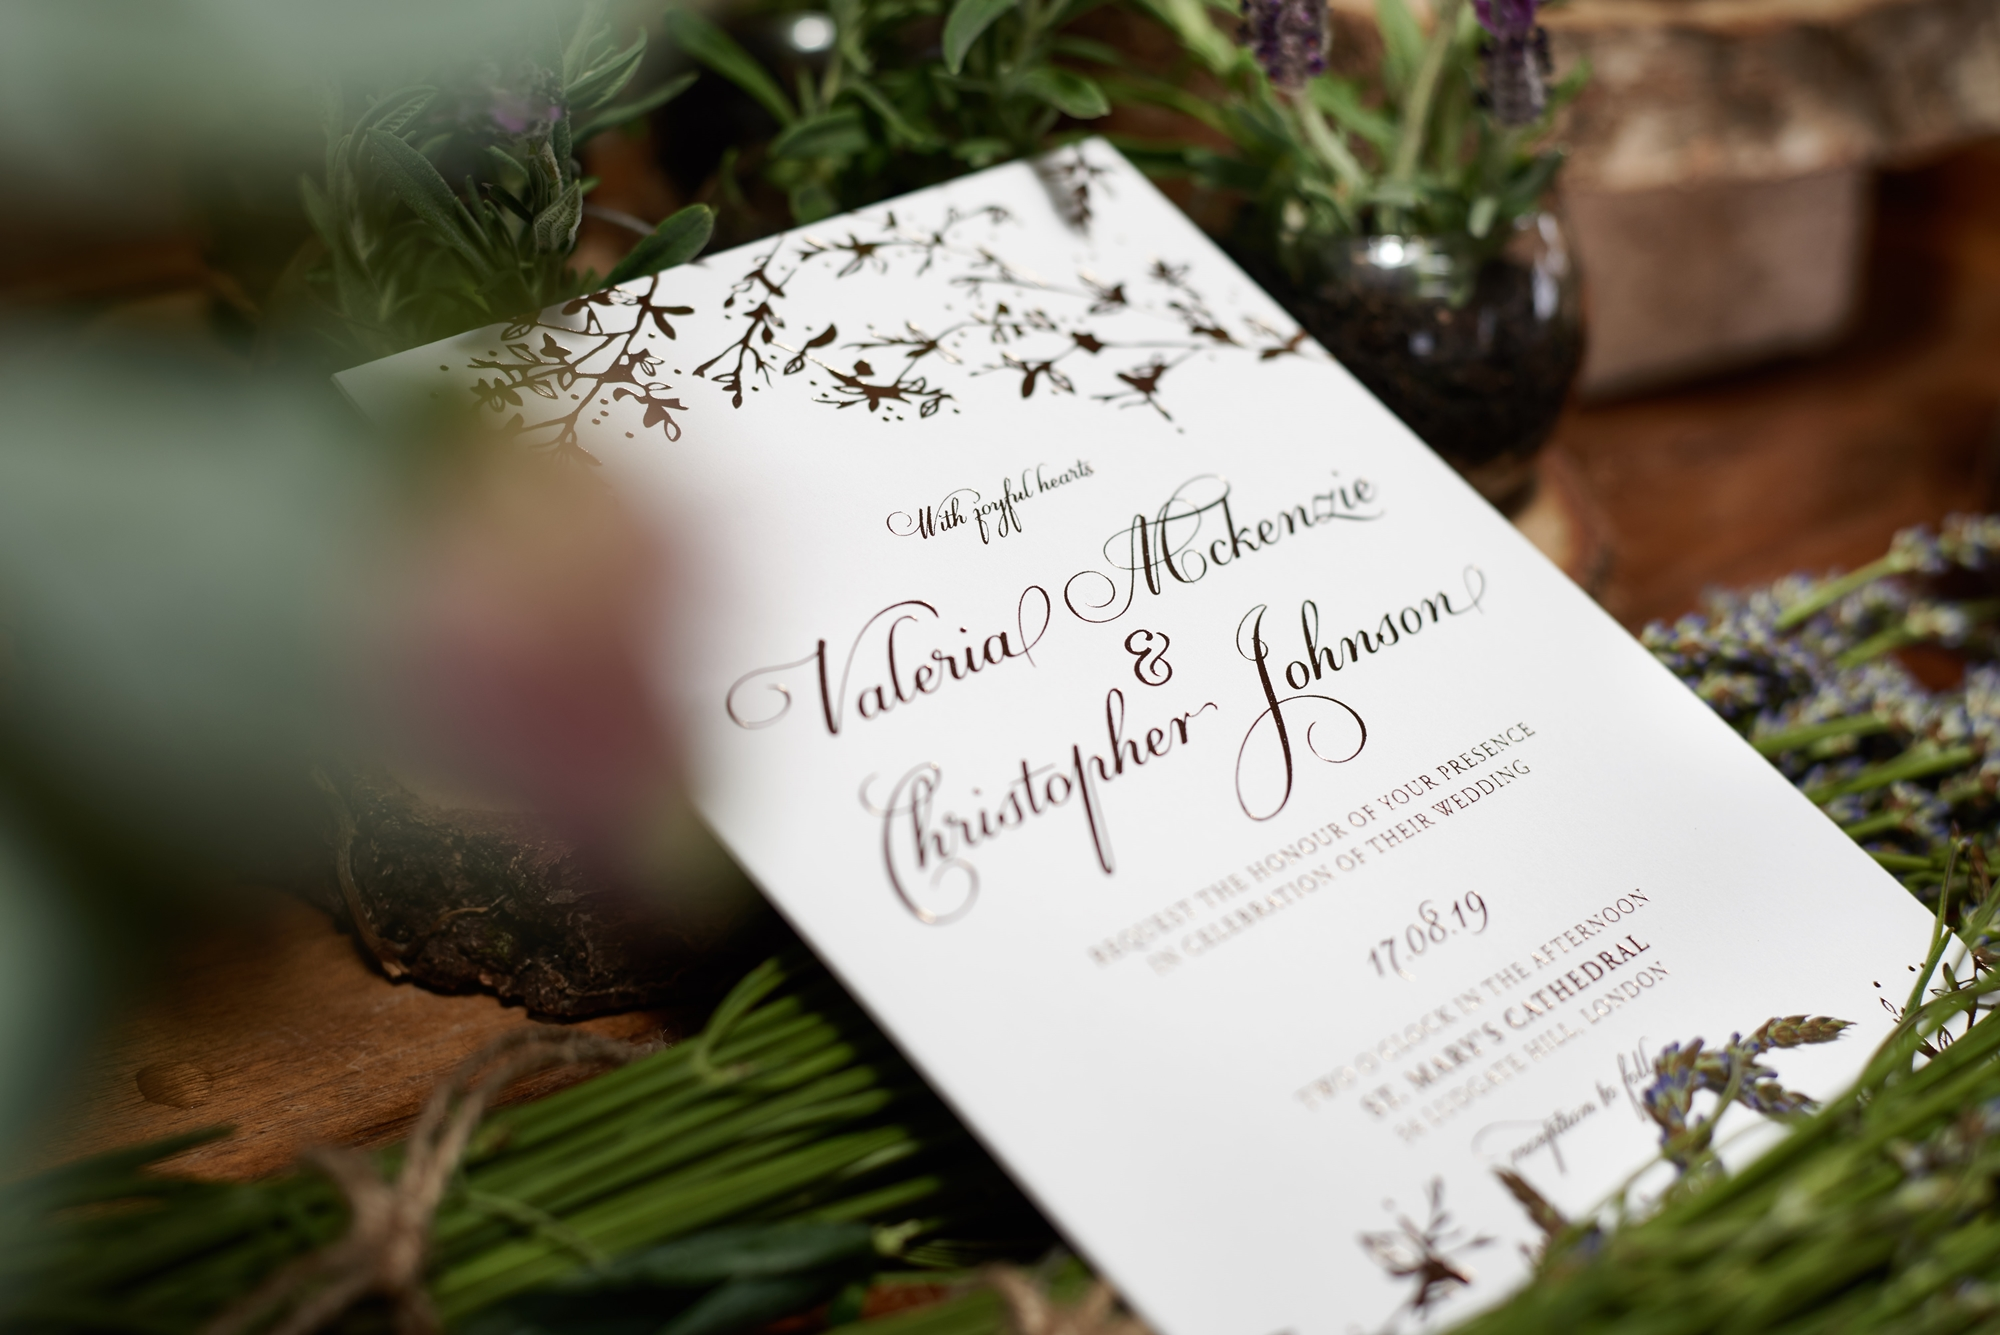 Victoria-Australia-luxury-wedding-inspiration-Sault - Inside table00493.jpg